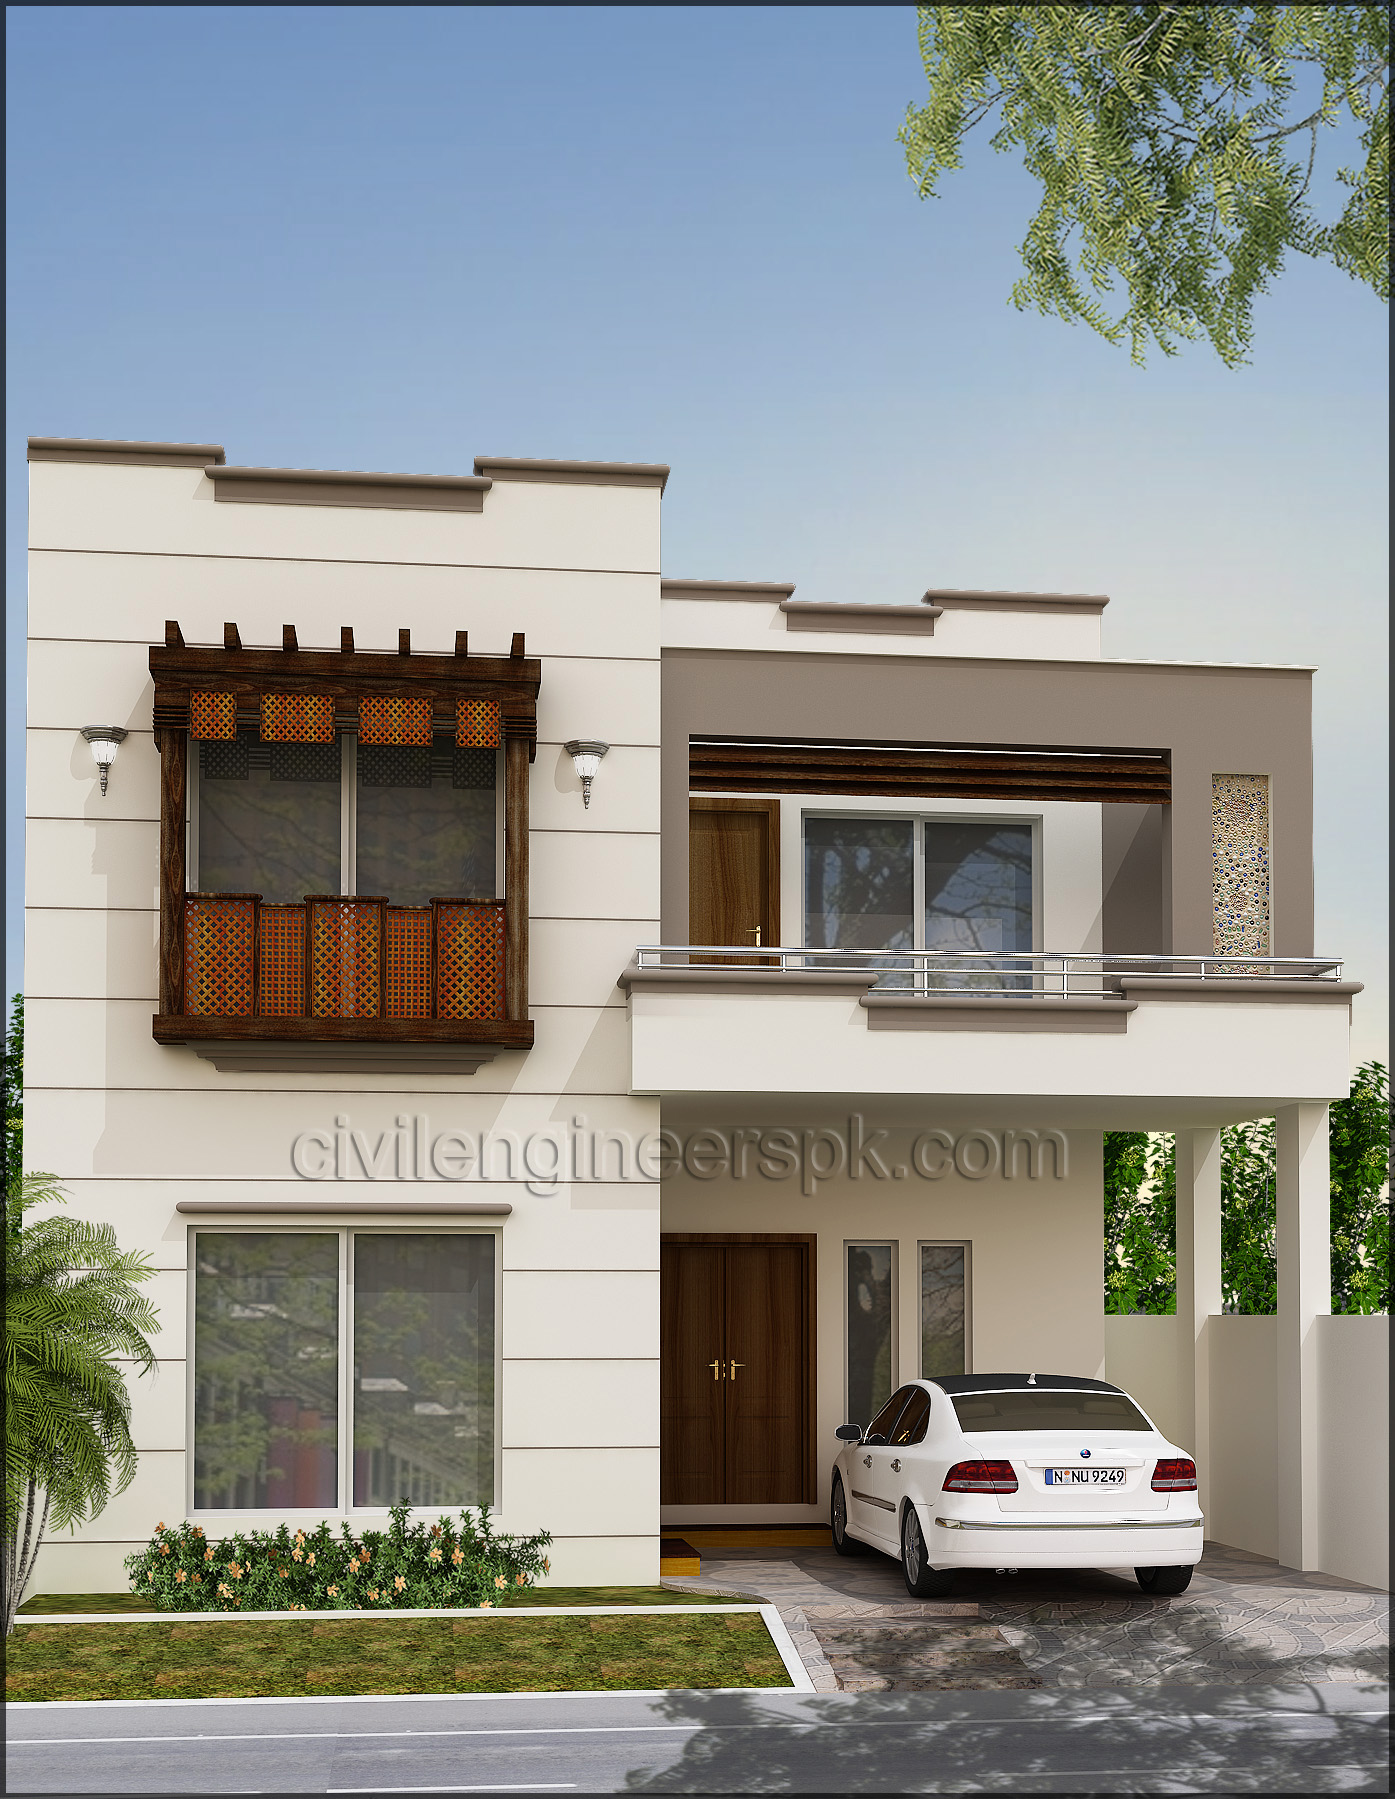 Front Elevation Houses Islamabad : House front views civil engineers pk